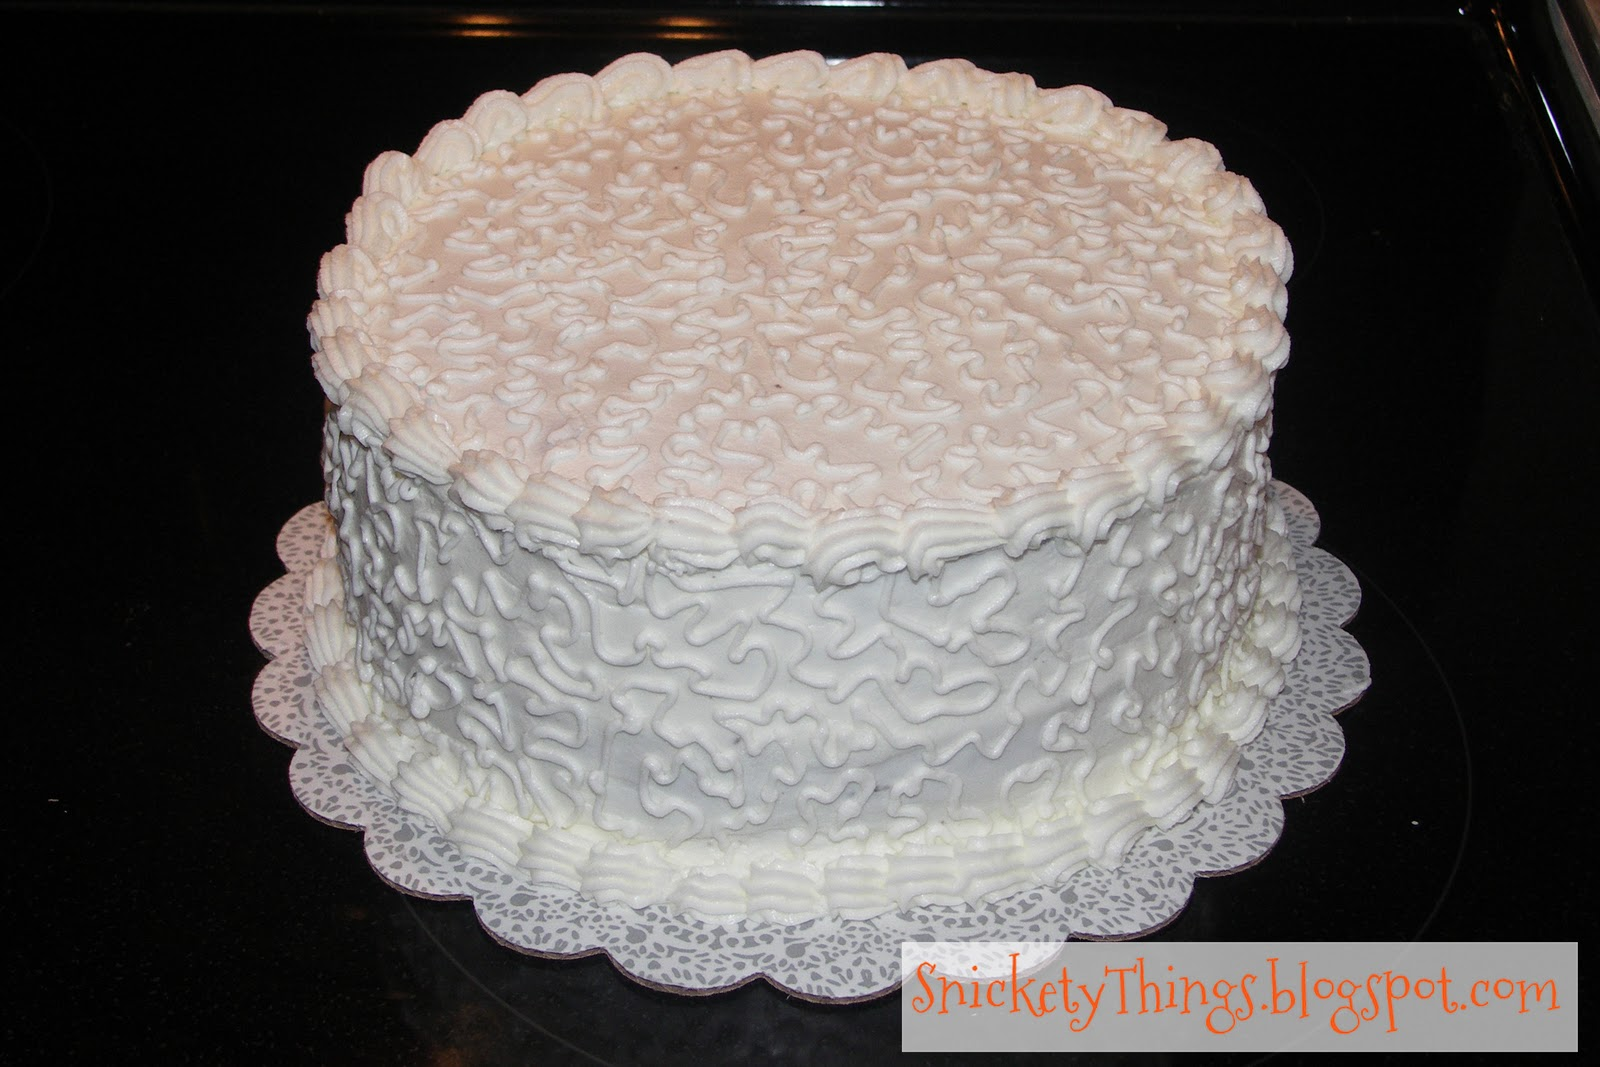 Cake Decorating Lace Pattern : Snickety Things: Adventures in Cake: Cornelli Lace